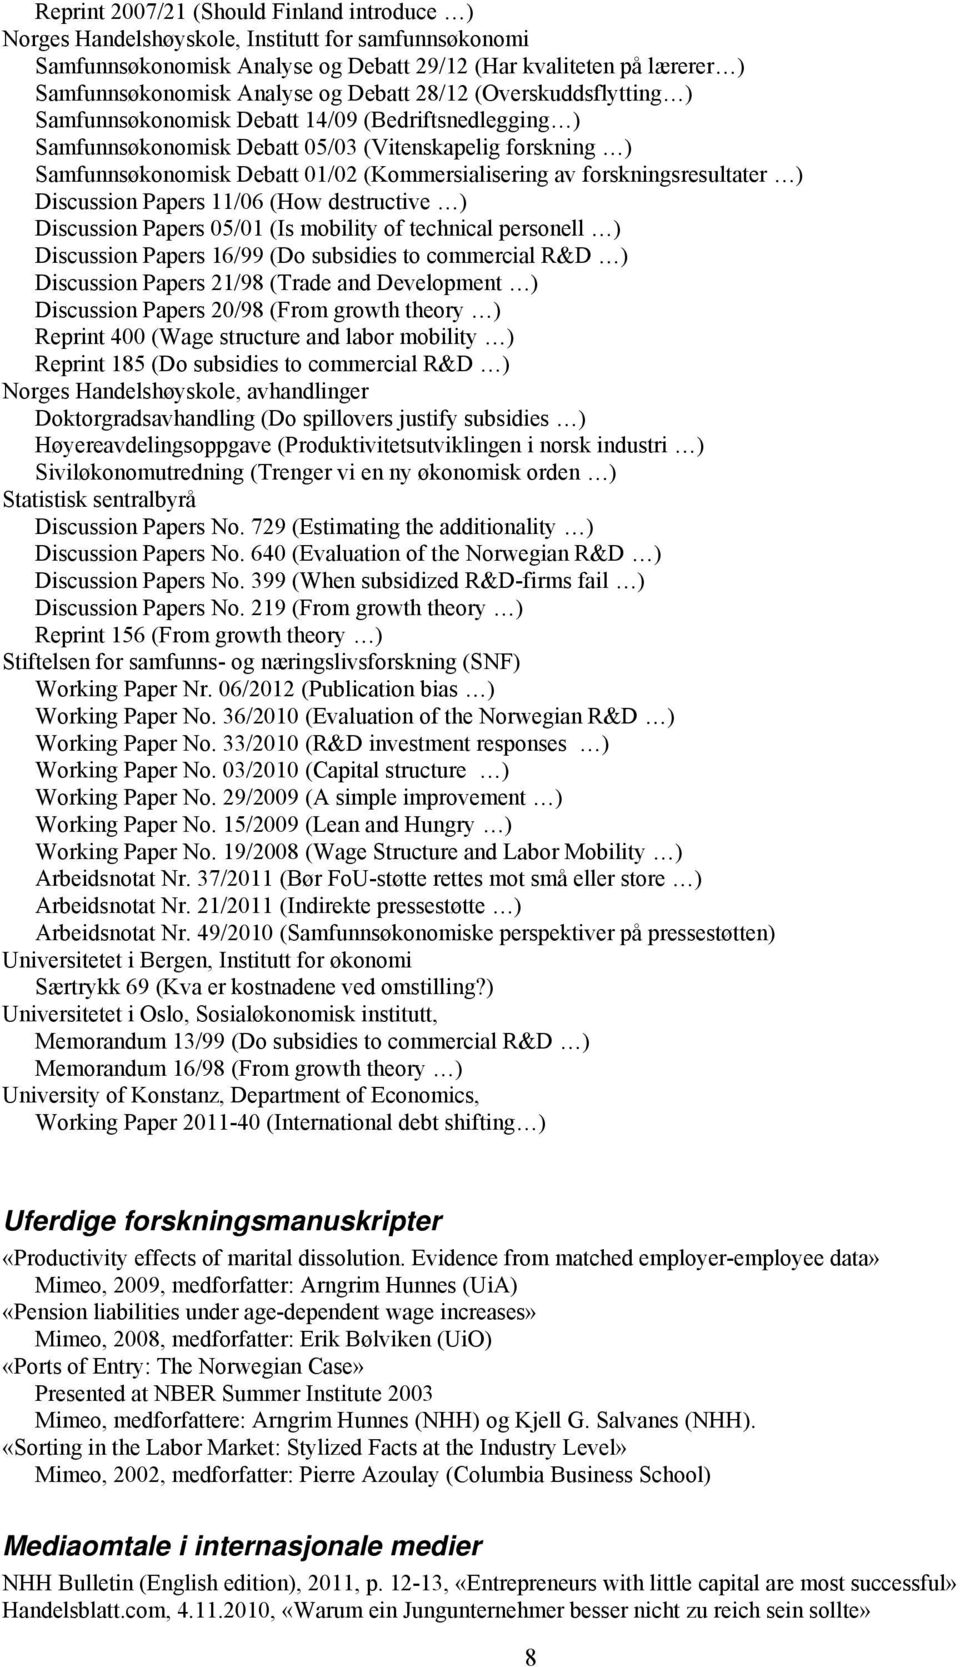 forskningsresultater ) Discussion Papers 11/06 (How destructive ) Discussion Papers 05/01 (Is mobility of technical personell ) Discussion Papers 16/99 (Do subsidies to commercial R&D ) Discussion